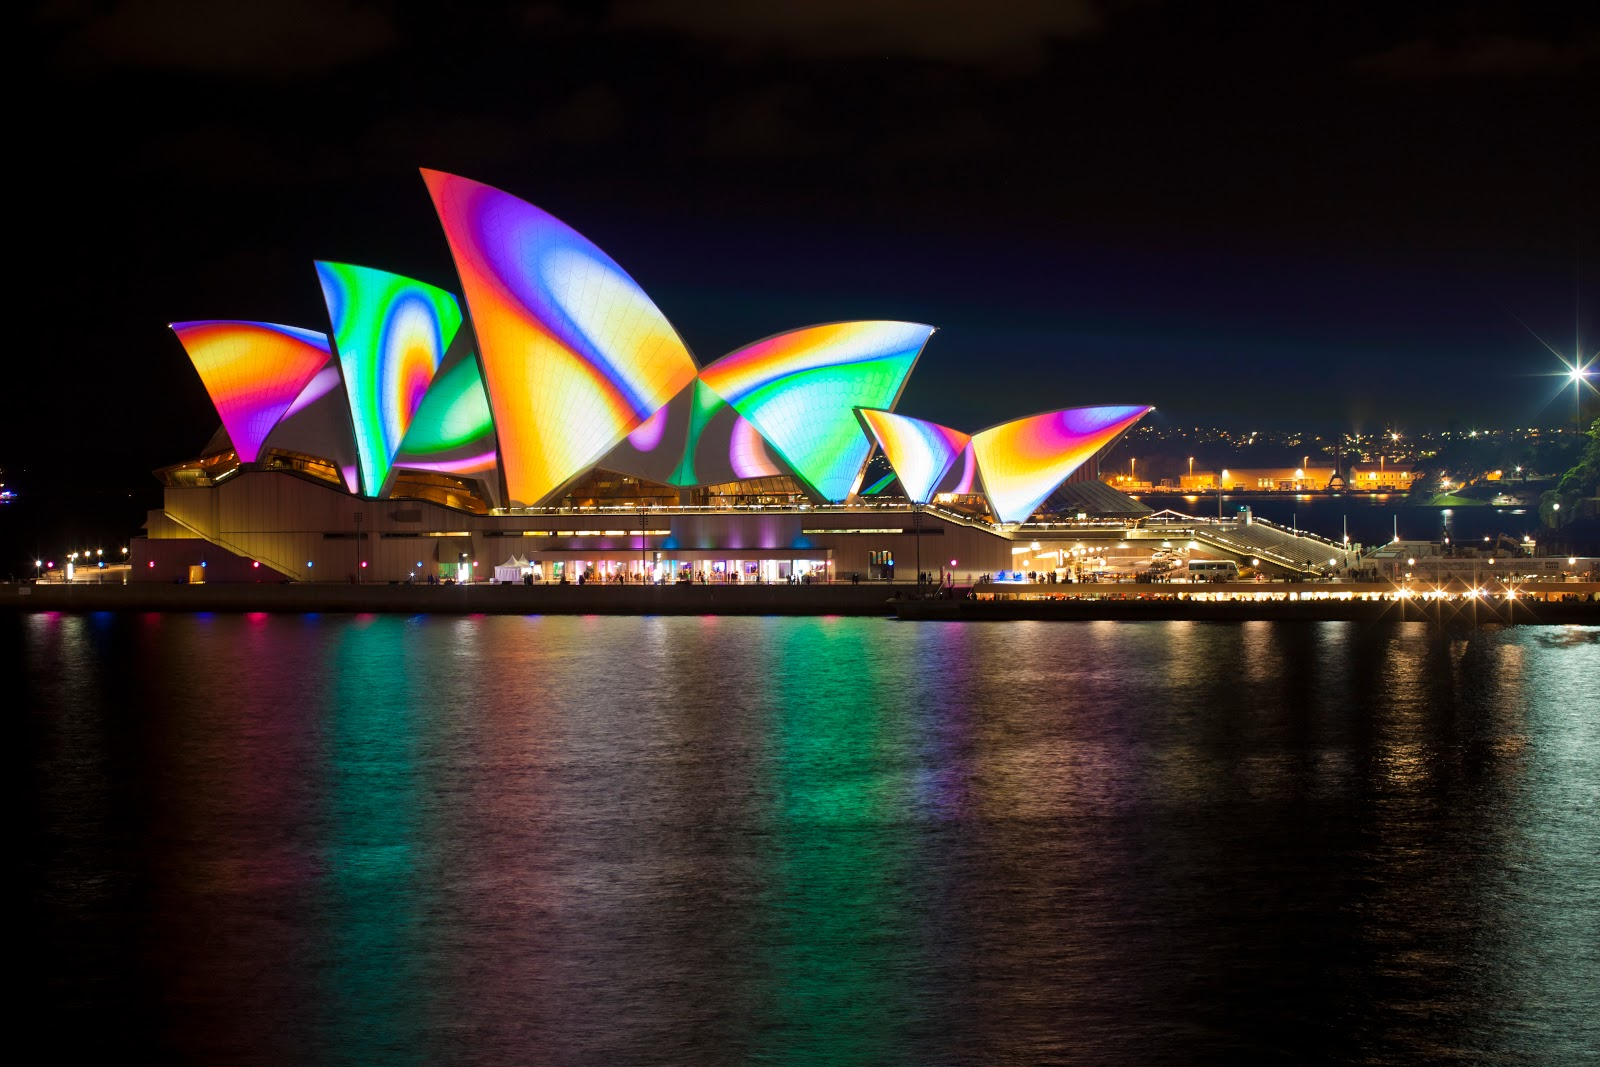 Australian Opera House Lit Up for VIVID Sydney Festival, 2012